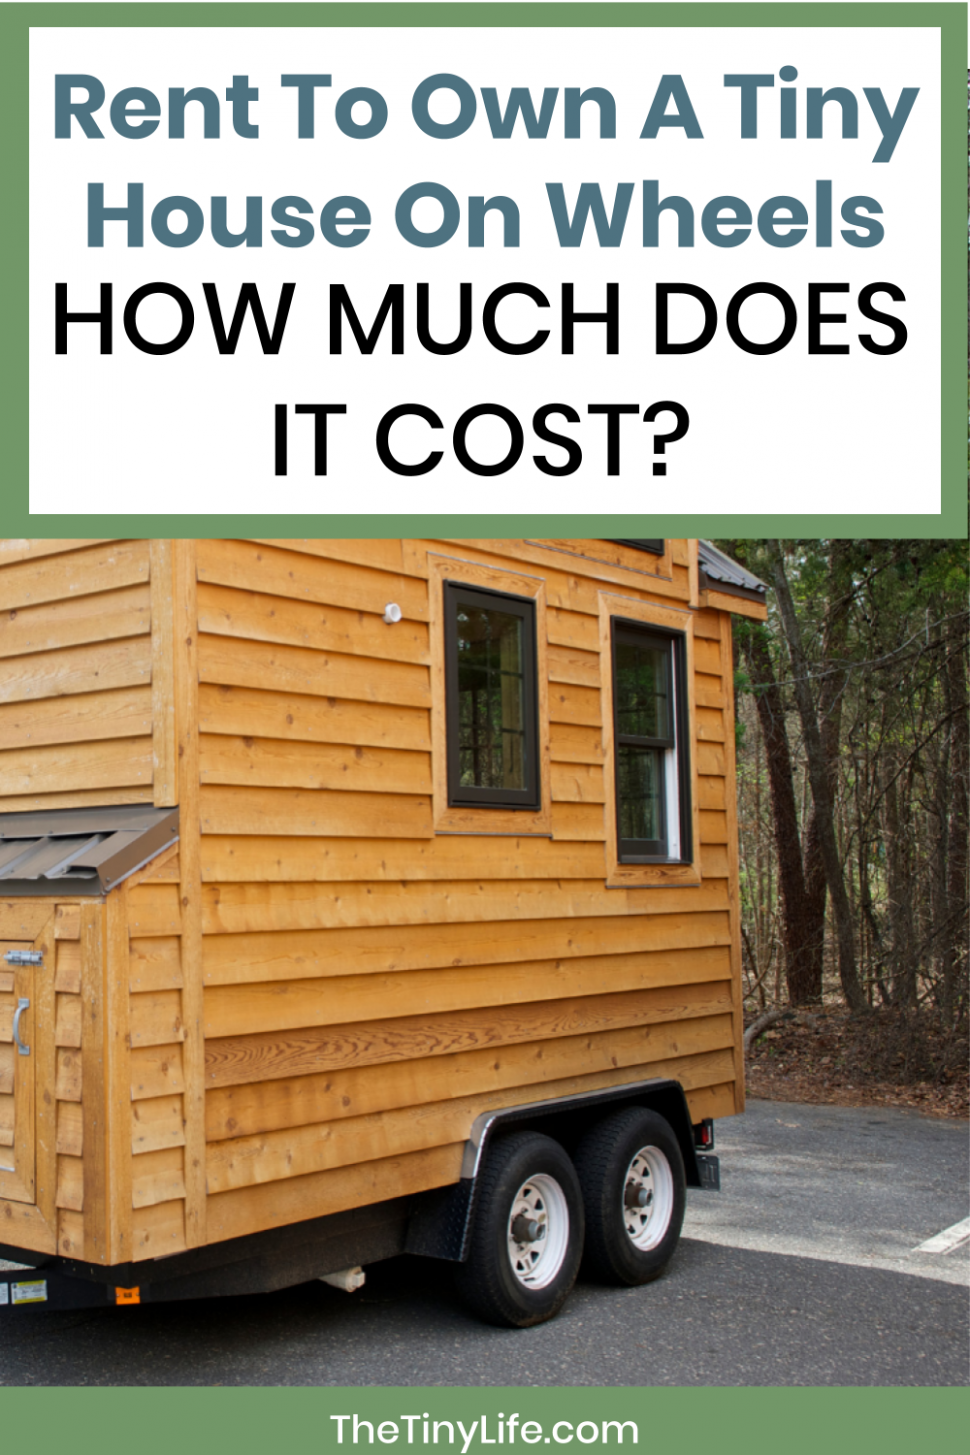 Rent To Own A Tiny House On Wheels: How Much Does It Cost | House ..